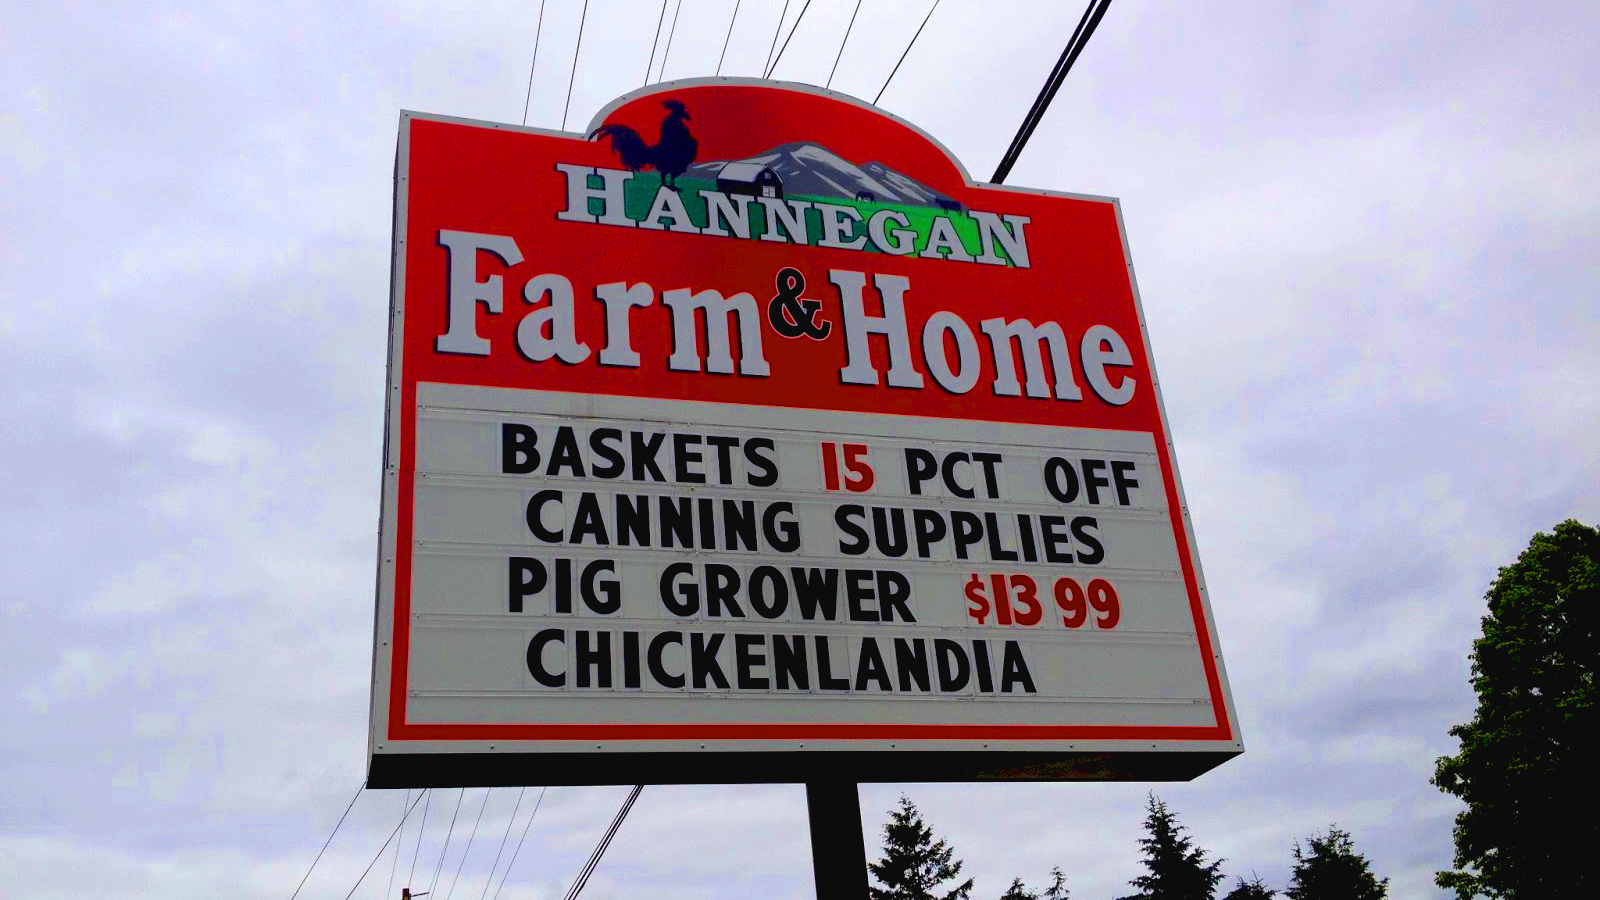 Welcome to Chickenlandia